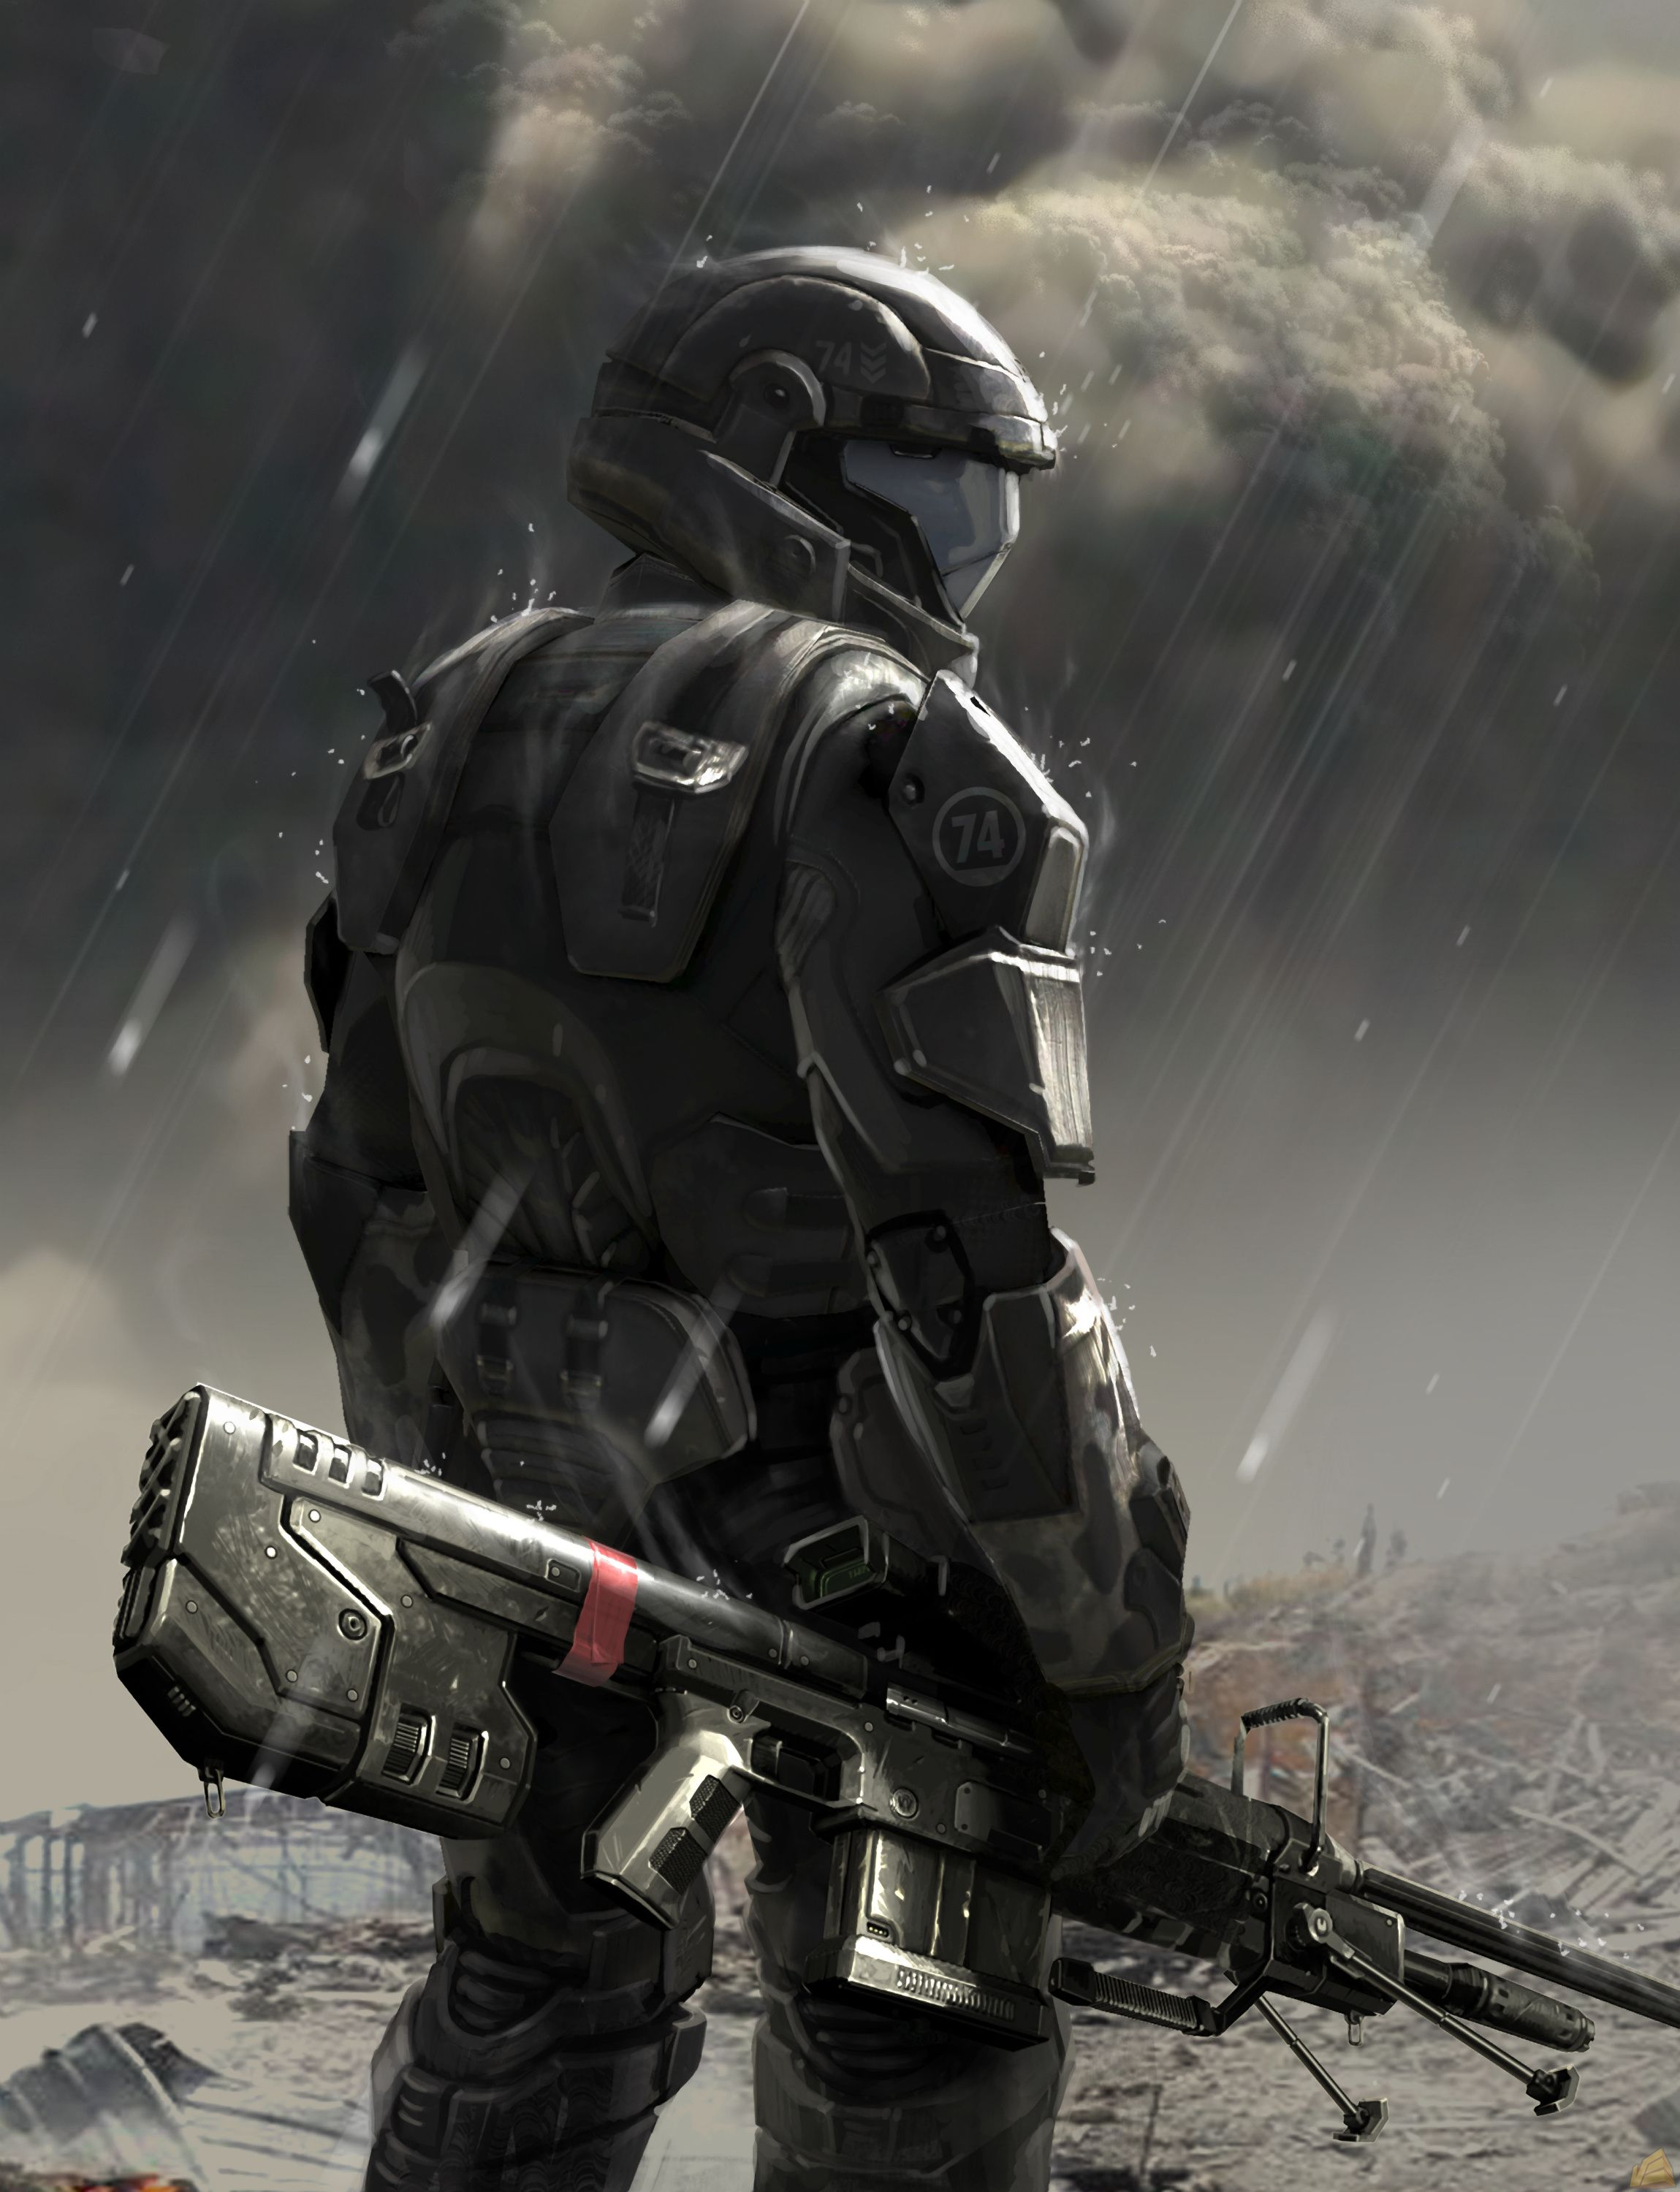 odst in the rain odst in the rain